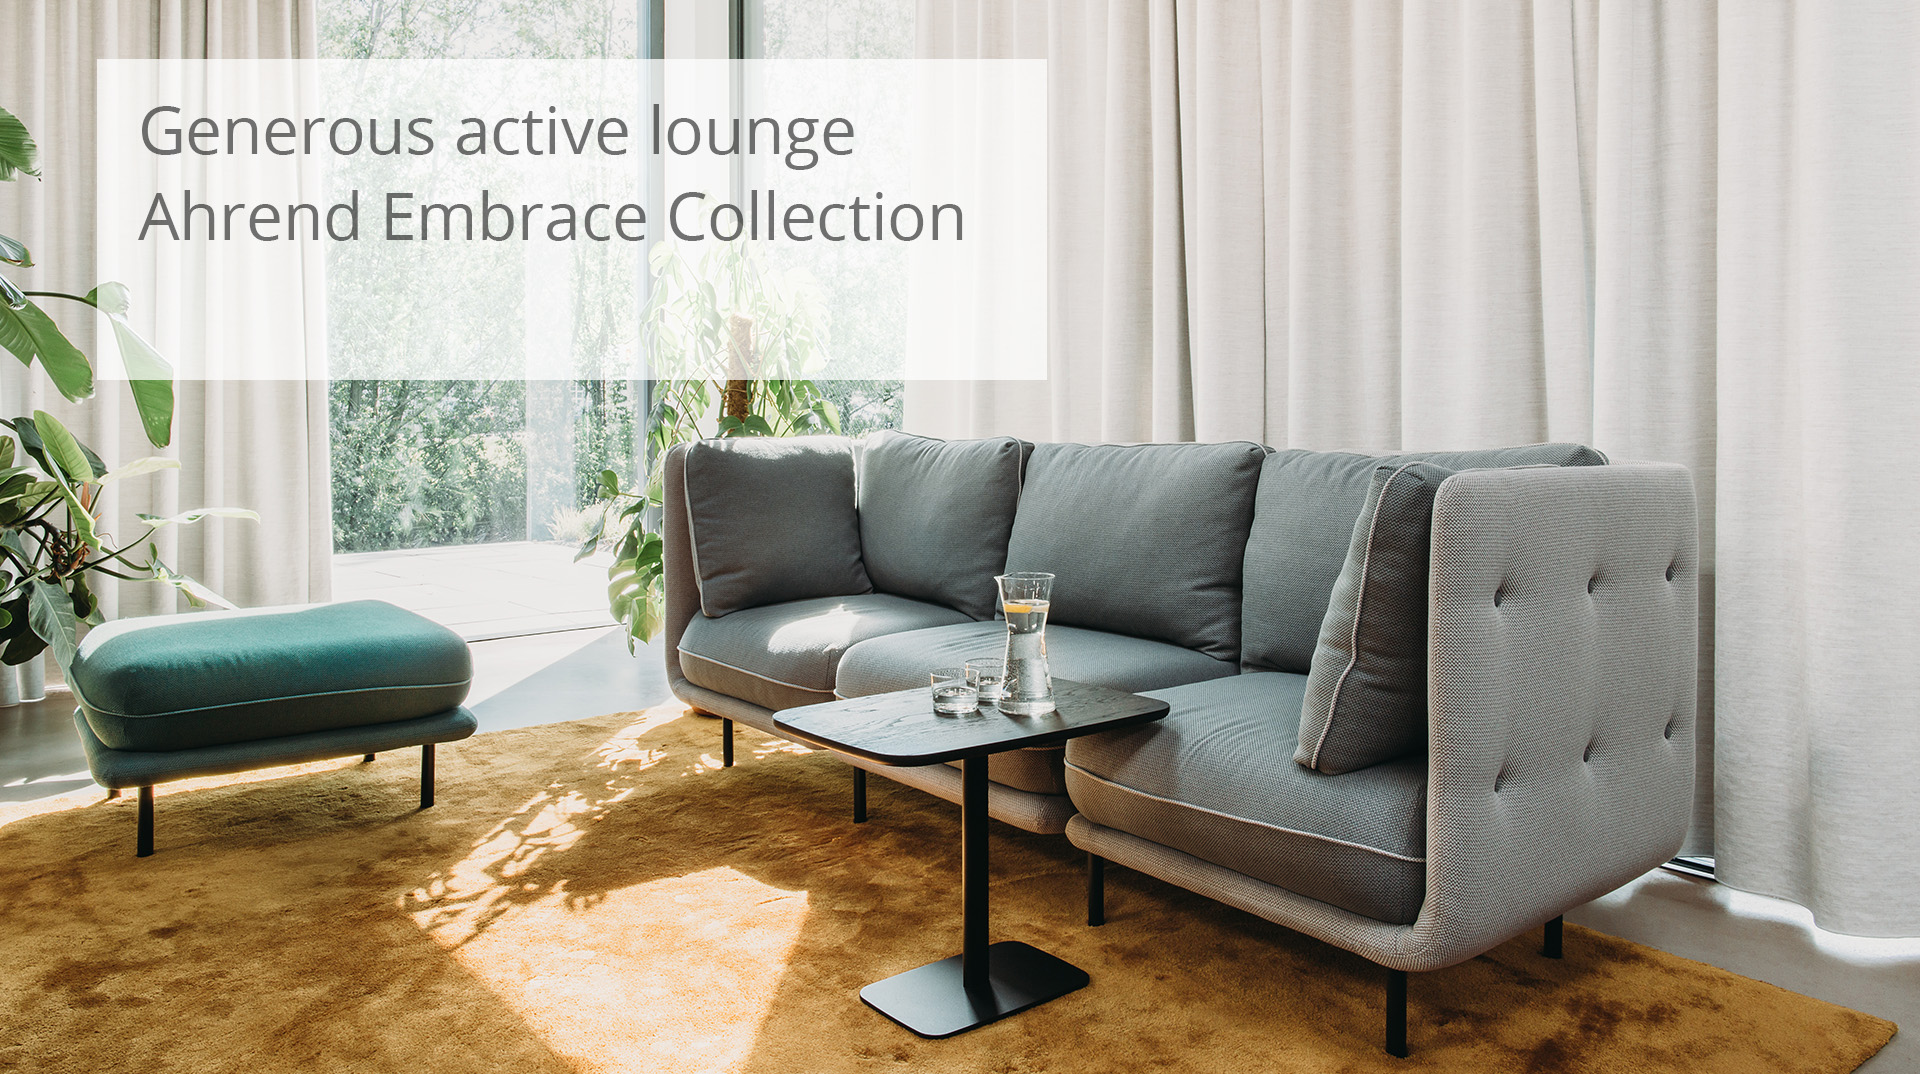 HofmanDujardin Embrace Collection Ahrend